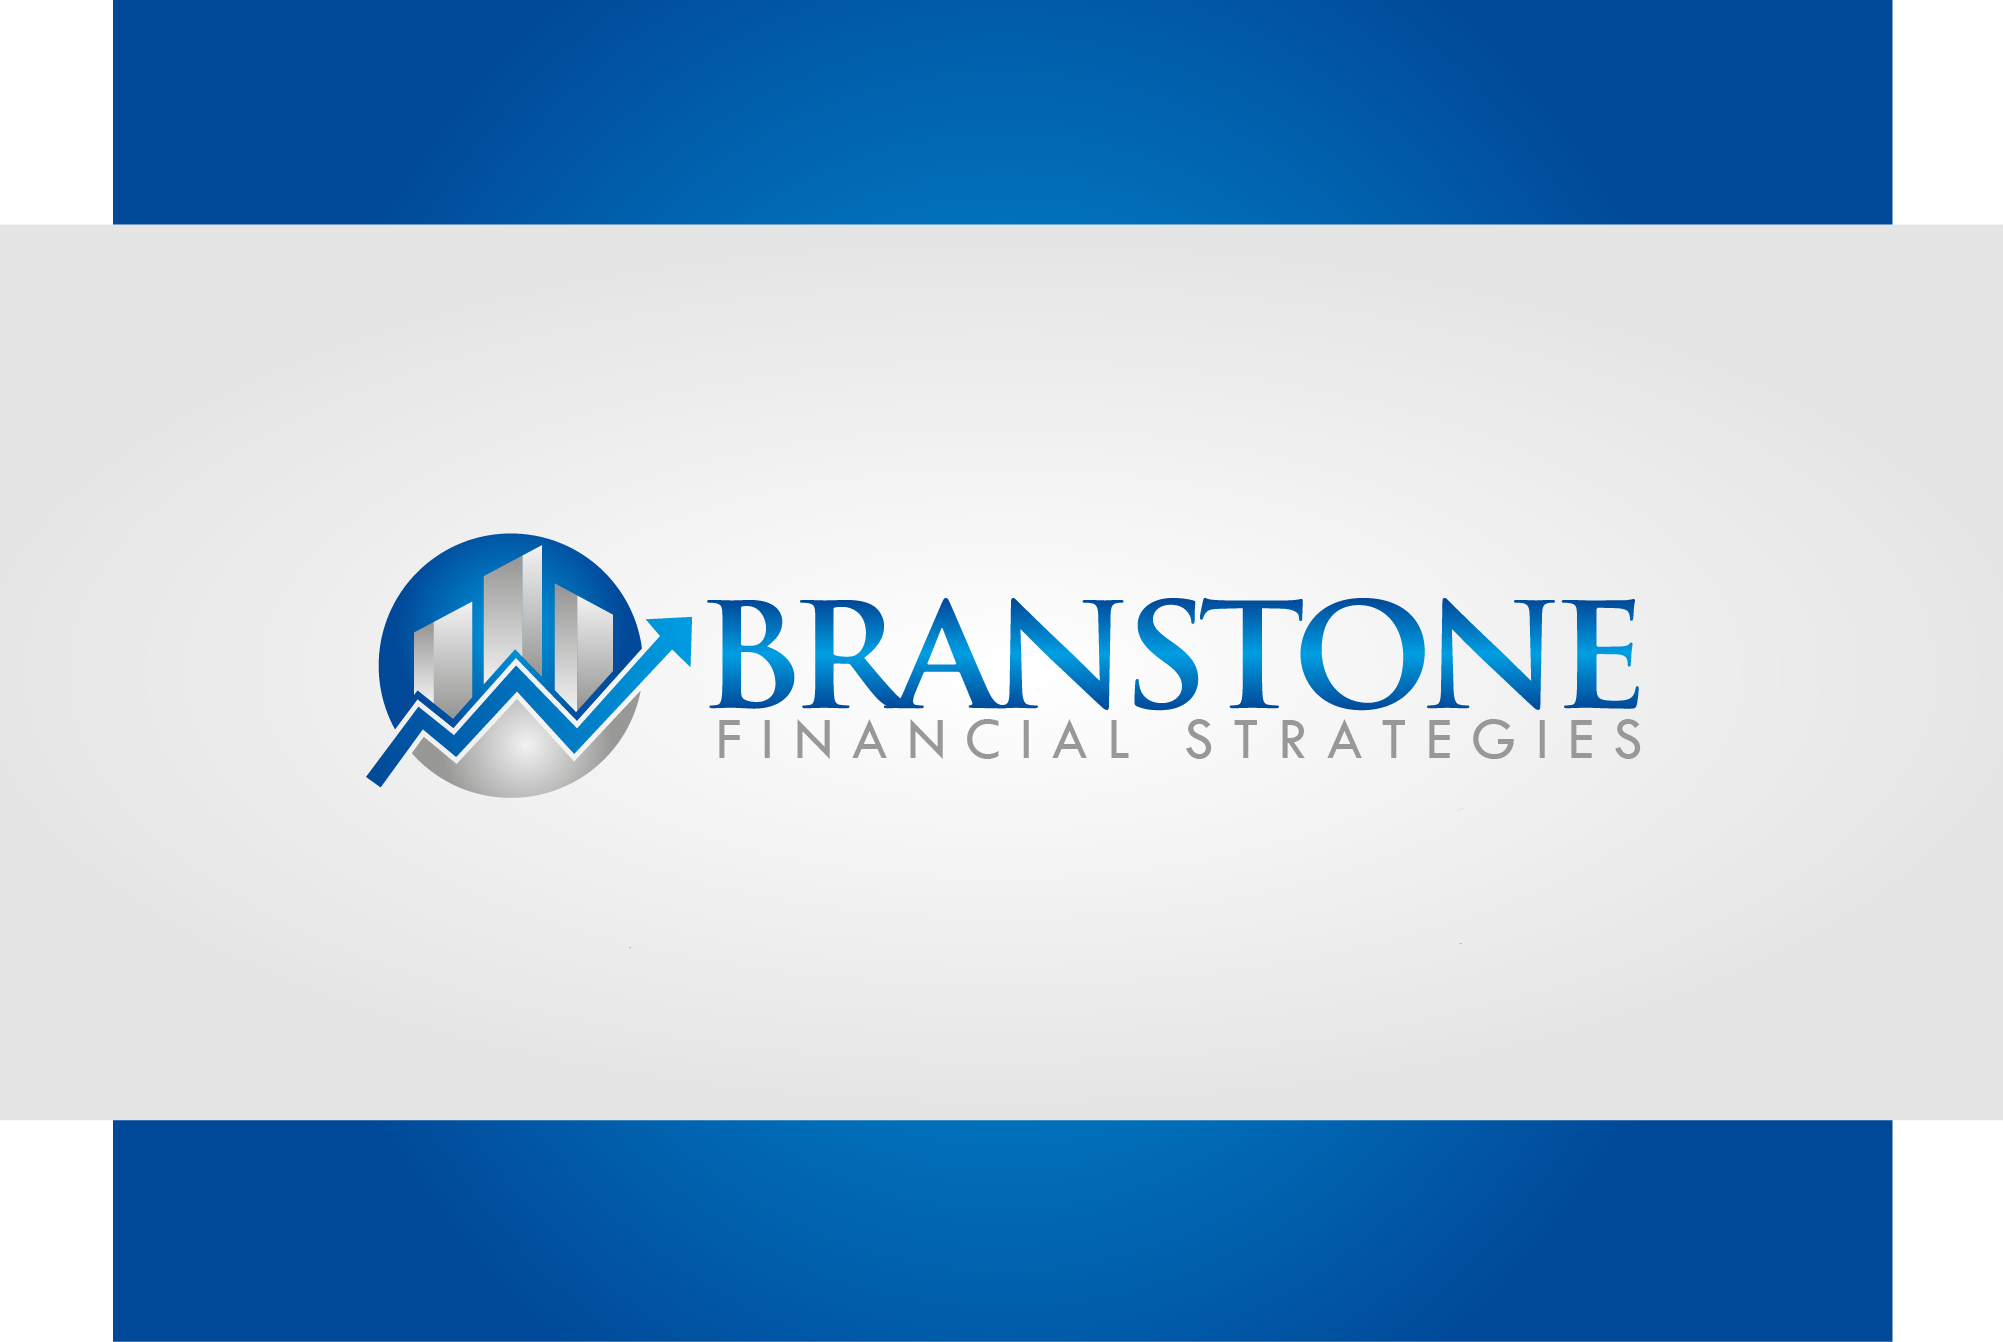 Logo Design by Ryan Hortizuela - Entry No. 335 in the Logo Design Contest Inspiring Logo Design for Branstone Financial Strategies.